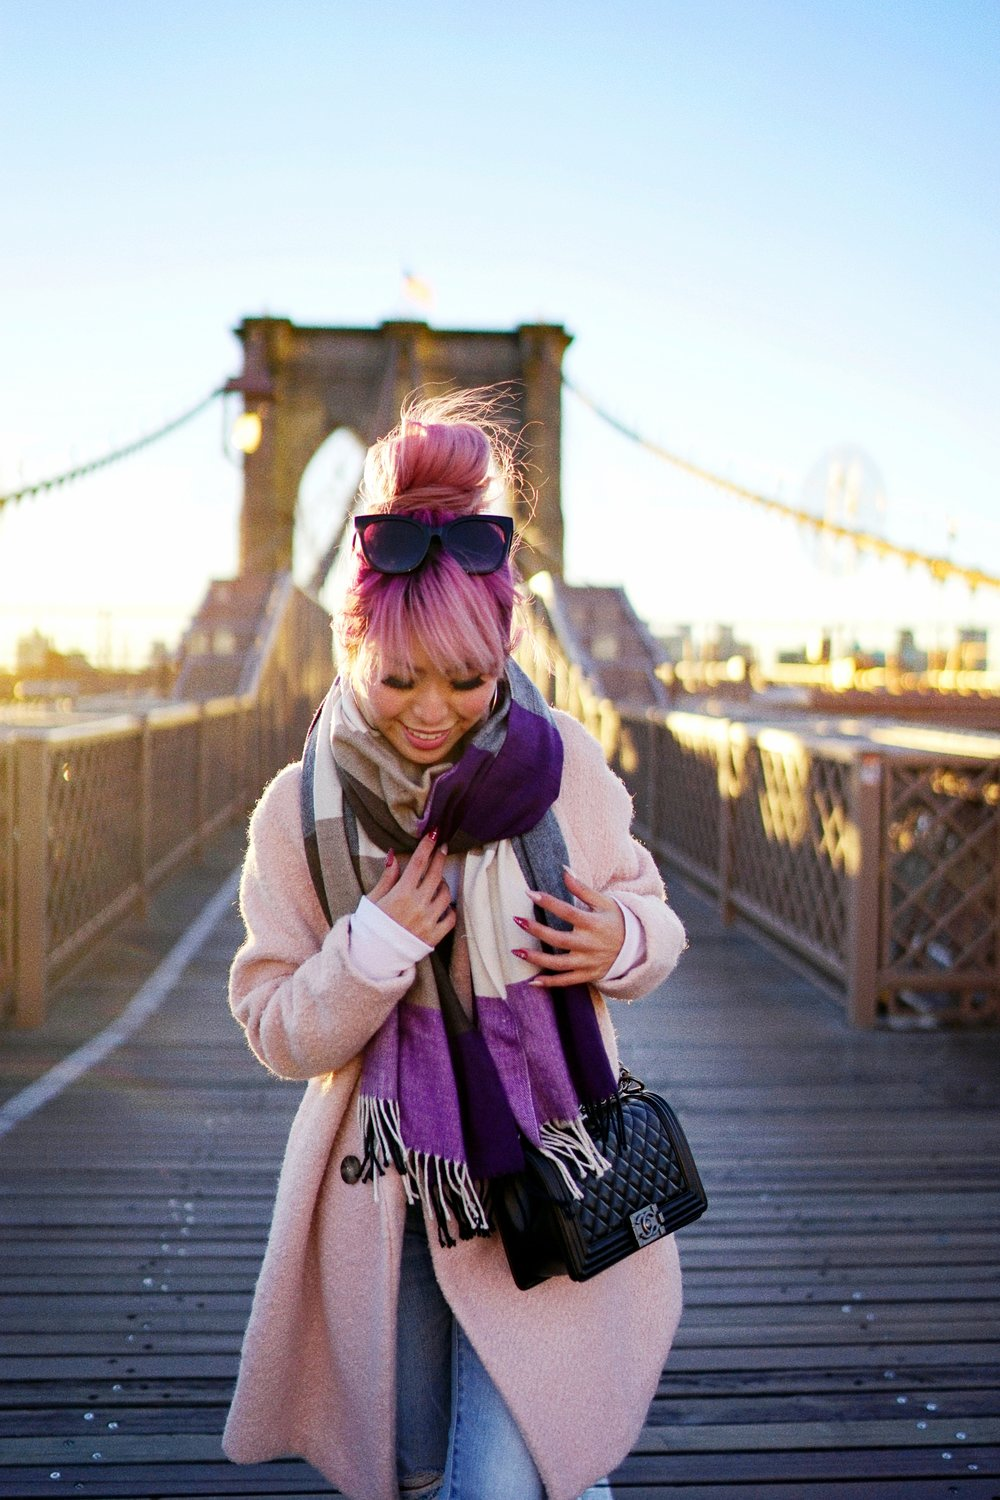 GAP Scarf-Zara pink coat-MOUSSY- frayed hem jeans- CHANEL Lambskin Quilted Medium Boy Flap Black-Adidas Superstar Shoes-Urban Outfitters Sunglasses-Aika's Love Closet-Sealtle fashion style blogger from japan-pink hair-brooklyn bridge-new york-city 12